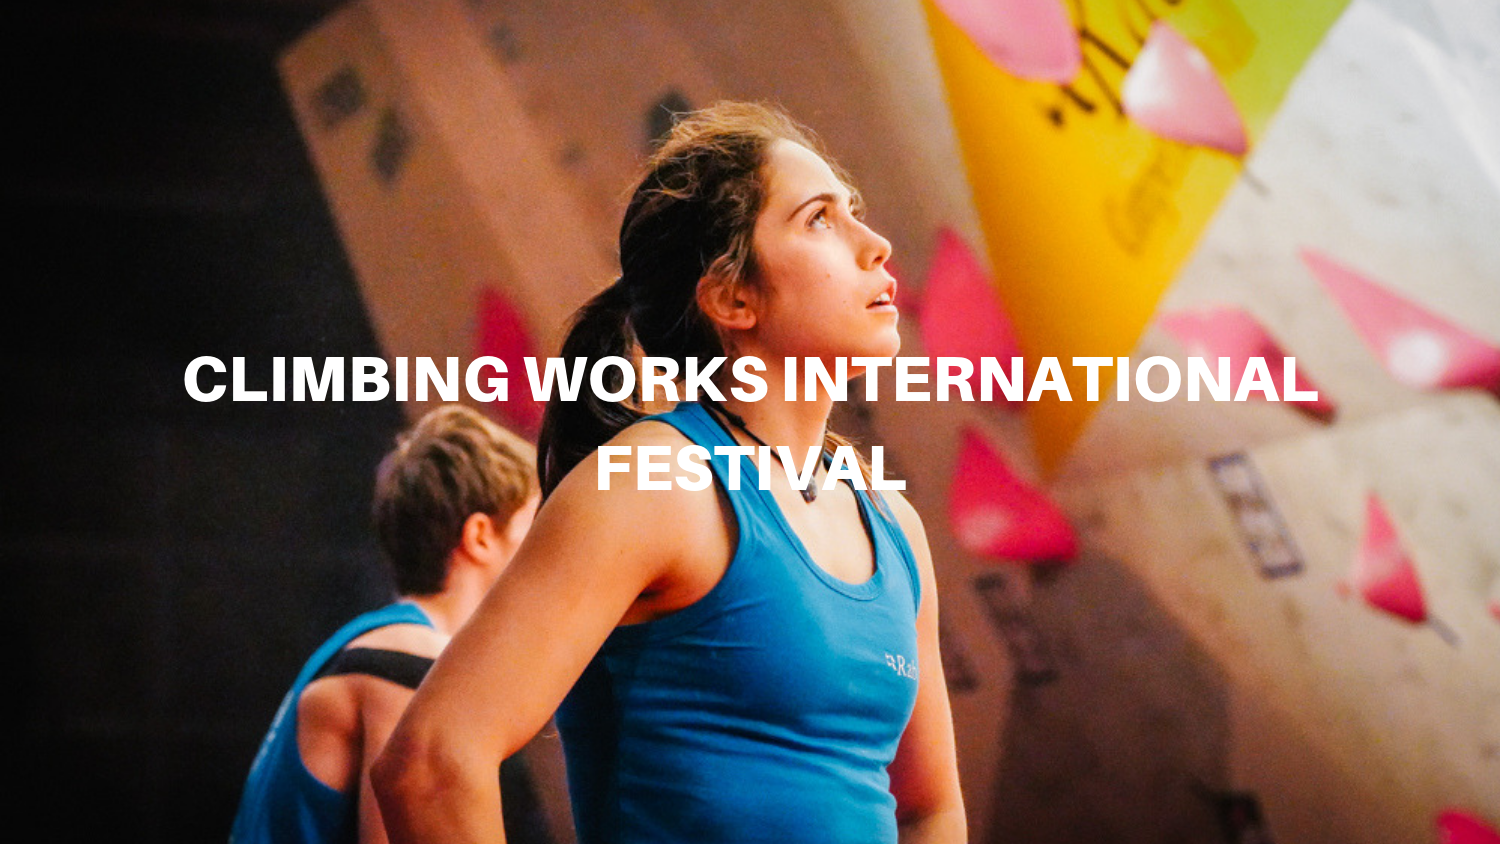 Climbing Works International Festival - Growing demand in an increasingly saturated marketplace